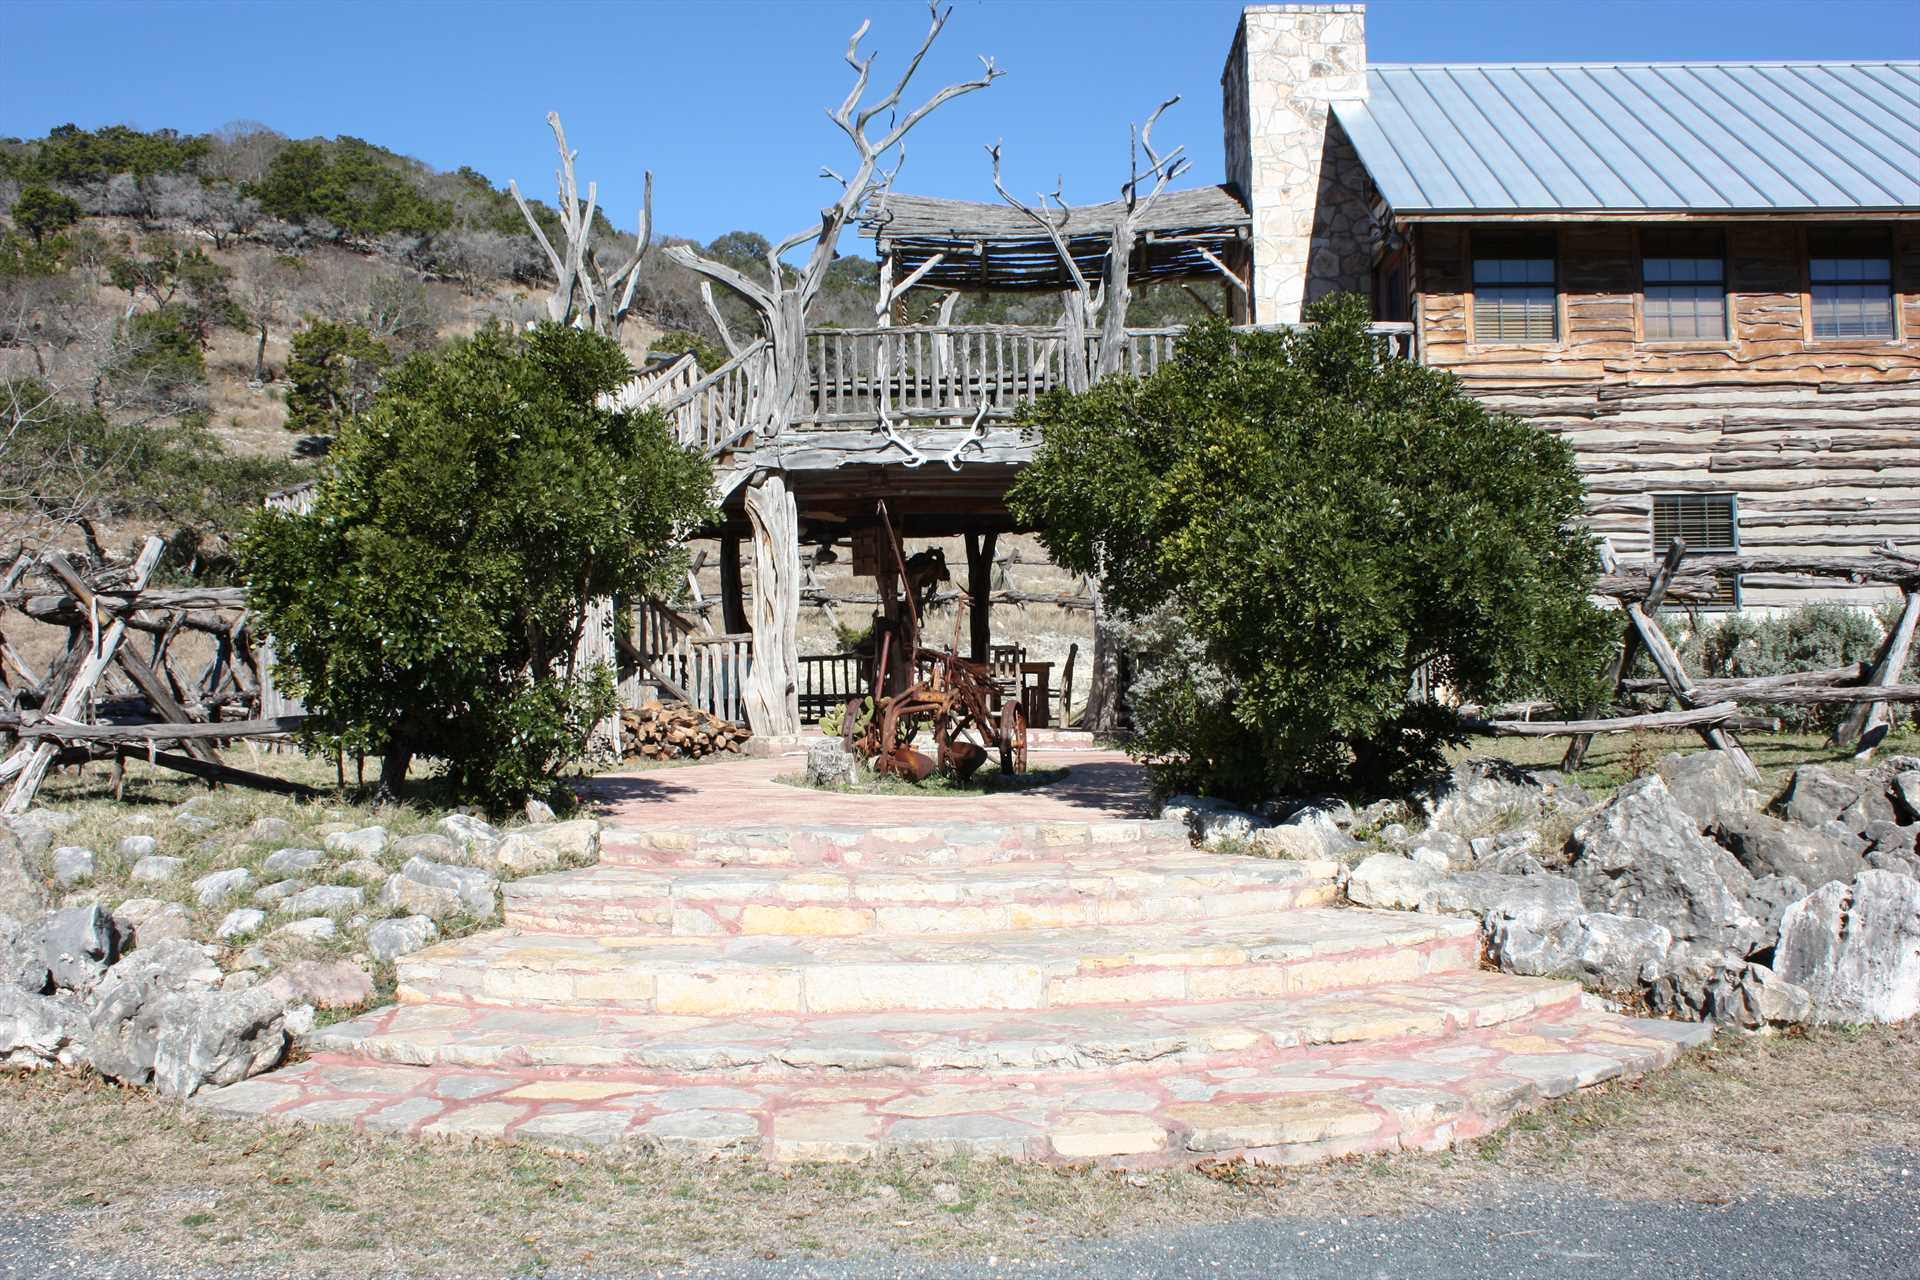 Immaculate grounds and rustic western lodge atmosphere greet you to this wonderful Hill Country hideaway!